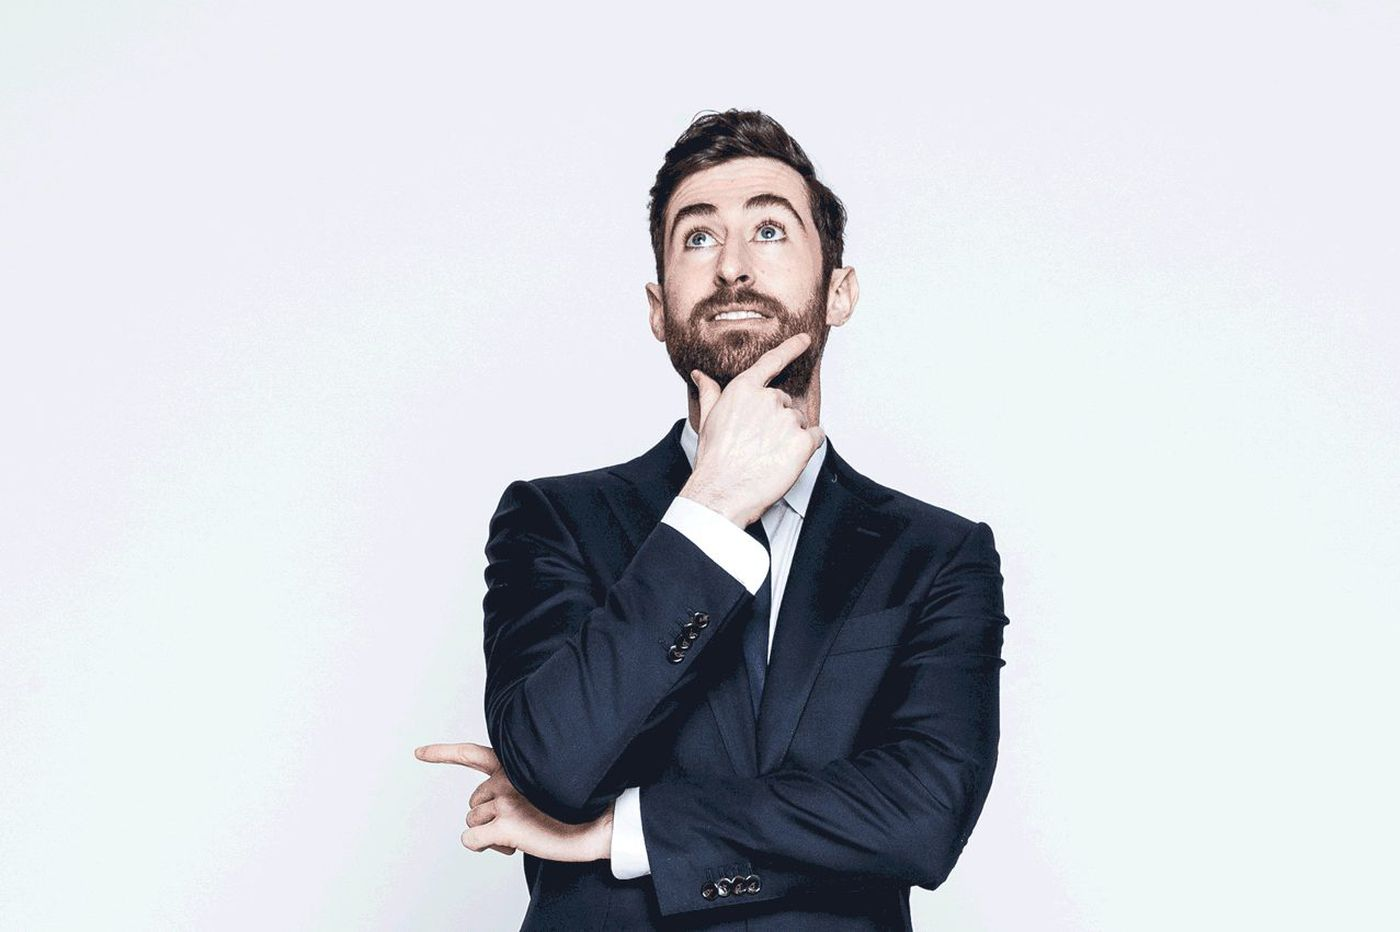 HQ host Scott Rogowsky: Hold the phone – he's live on stage at the Trocadero